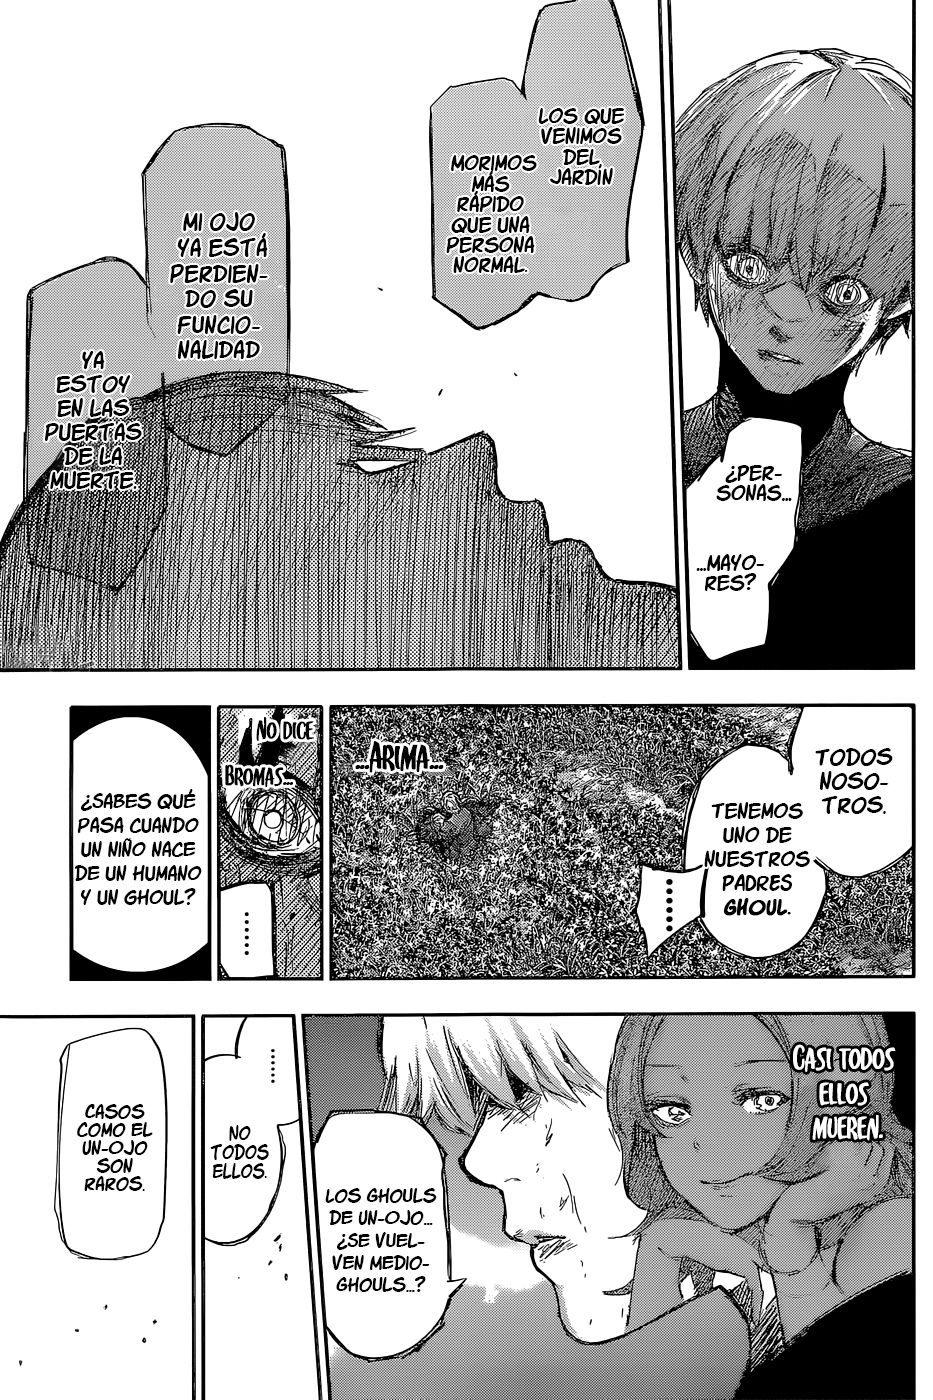 http://c5.ninemanga.com/es_manga/59/59/479974/a16d46597431e587079620a6b7de288d.jpg Page 7